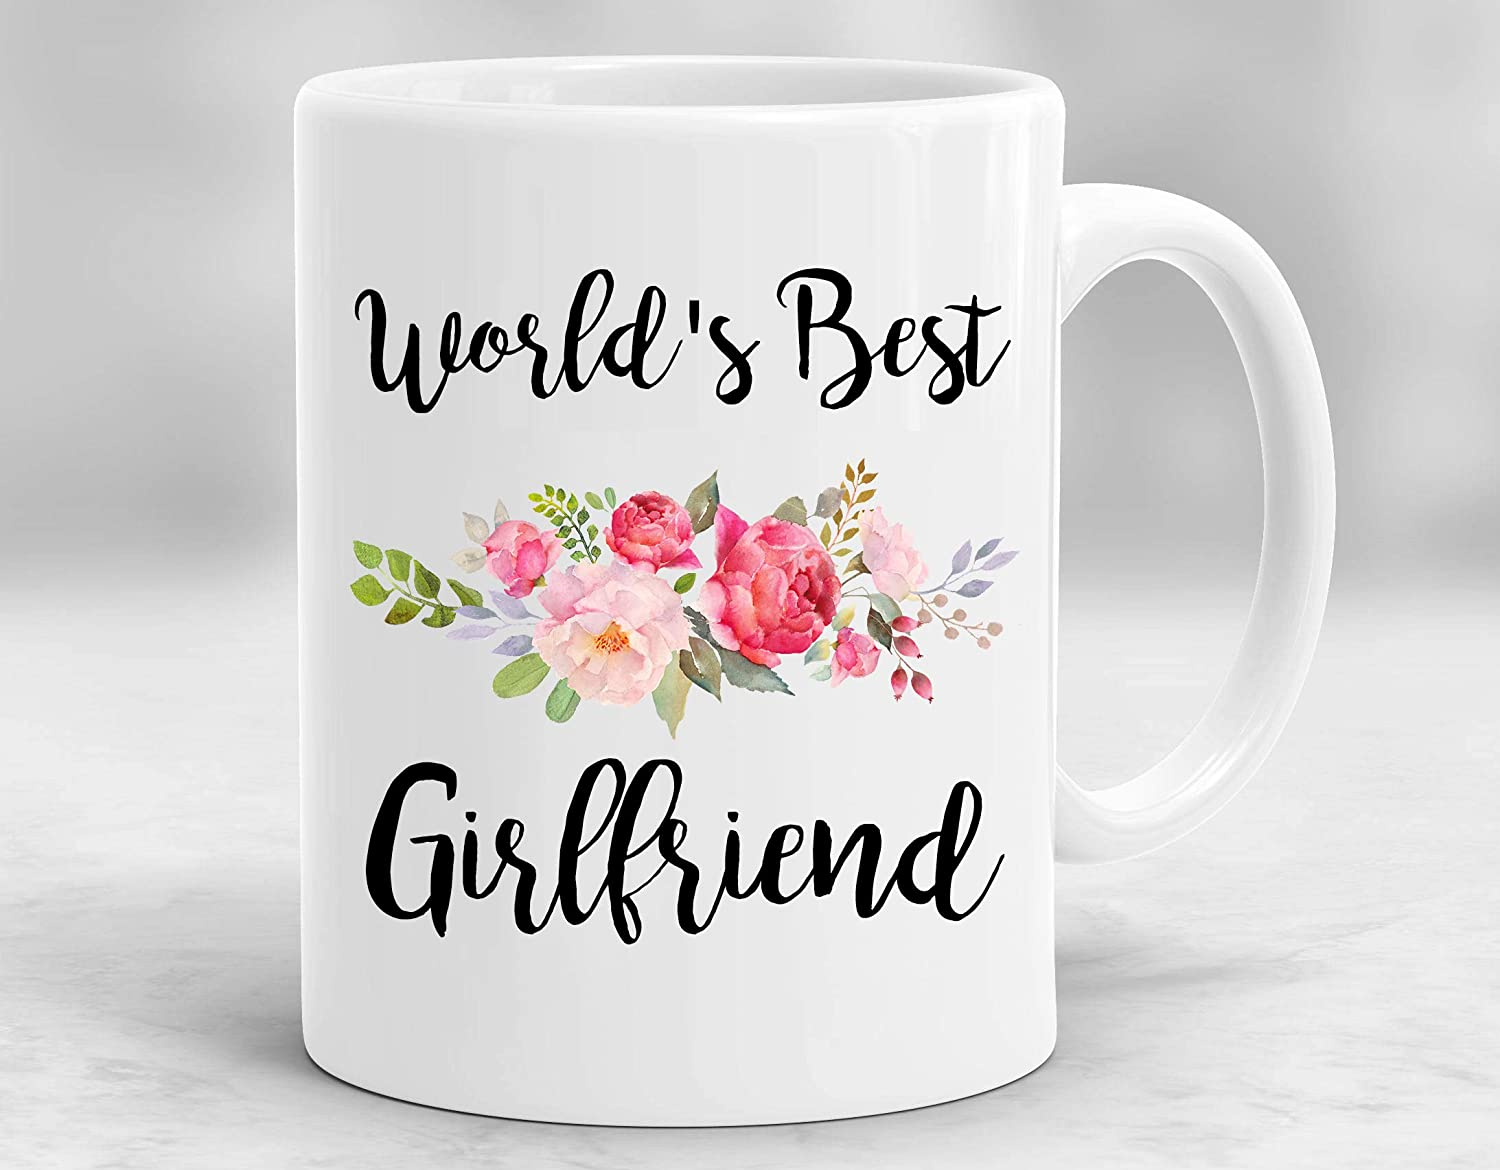 Interestprint World S Best Girlfriend 11 Oz Ceramic Coffee Mugs Tea Cup Funny Sarcasm Motivational Birthday Christmas Valentine S Day Gifts For Wife Girlfriend Bff Friends Women Kitchen Dining